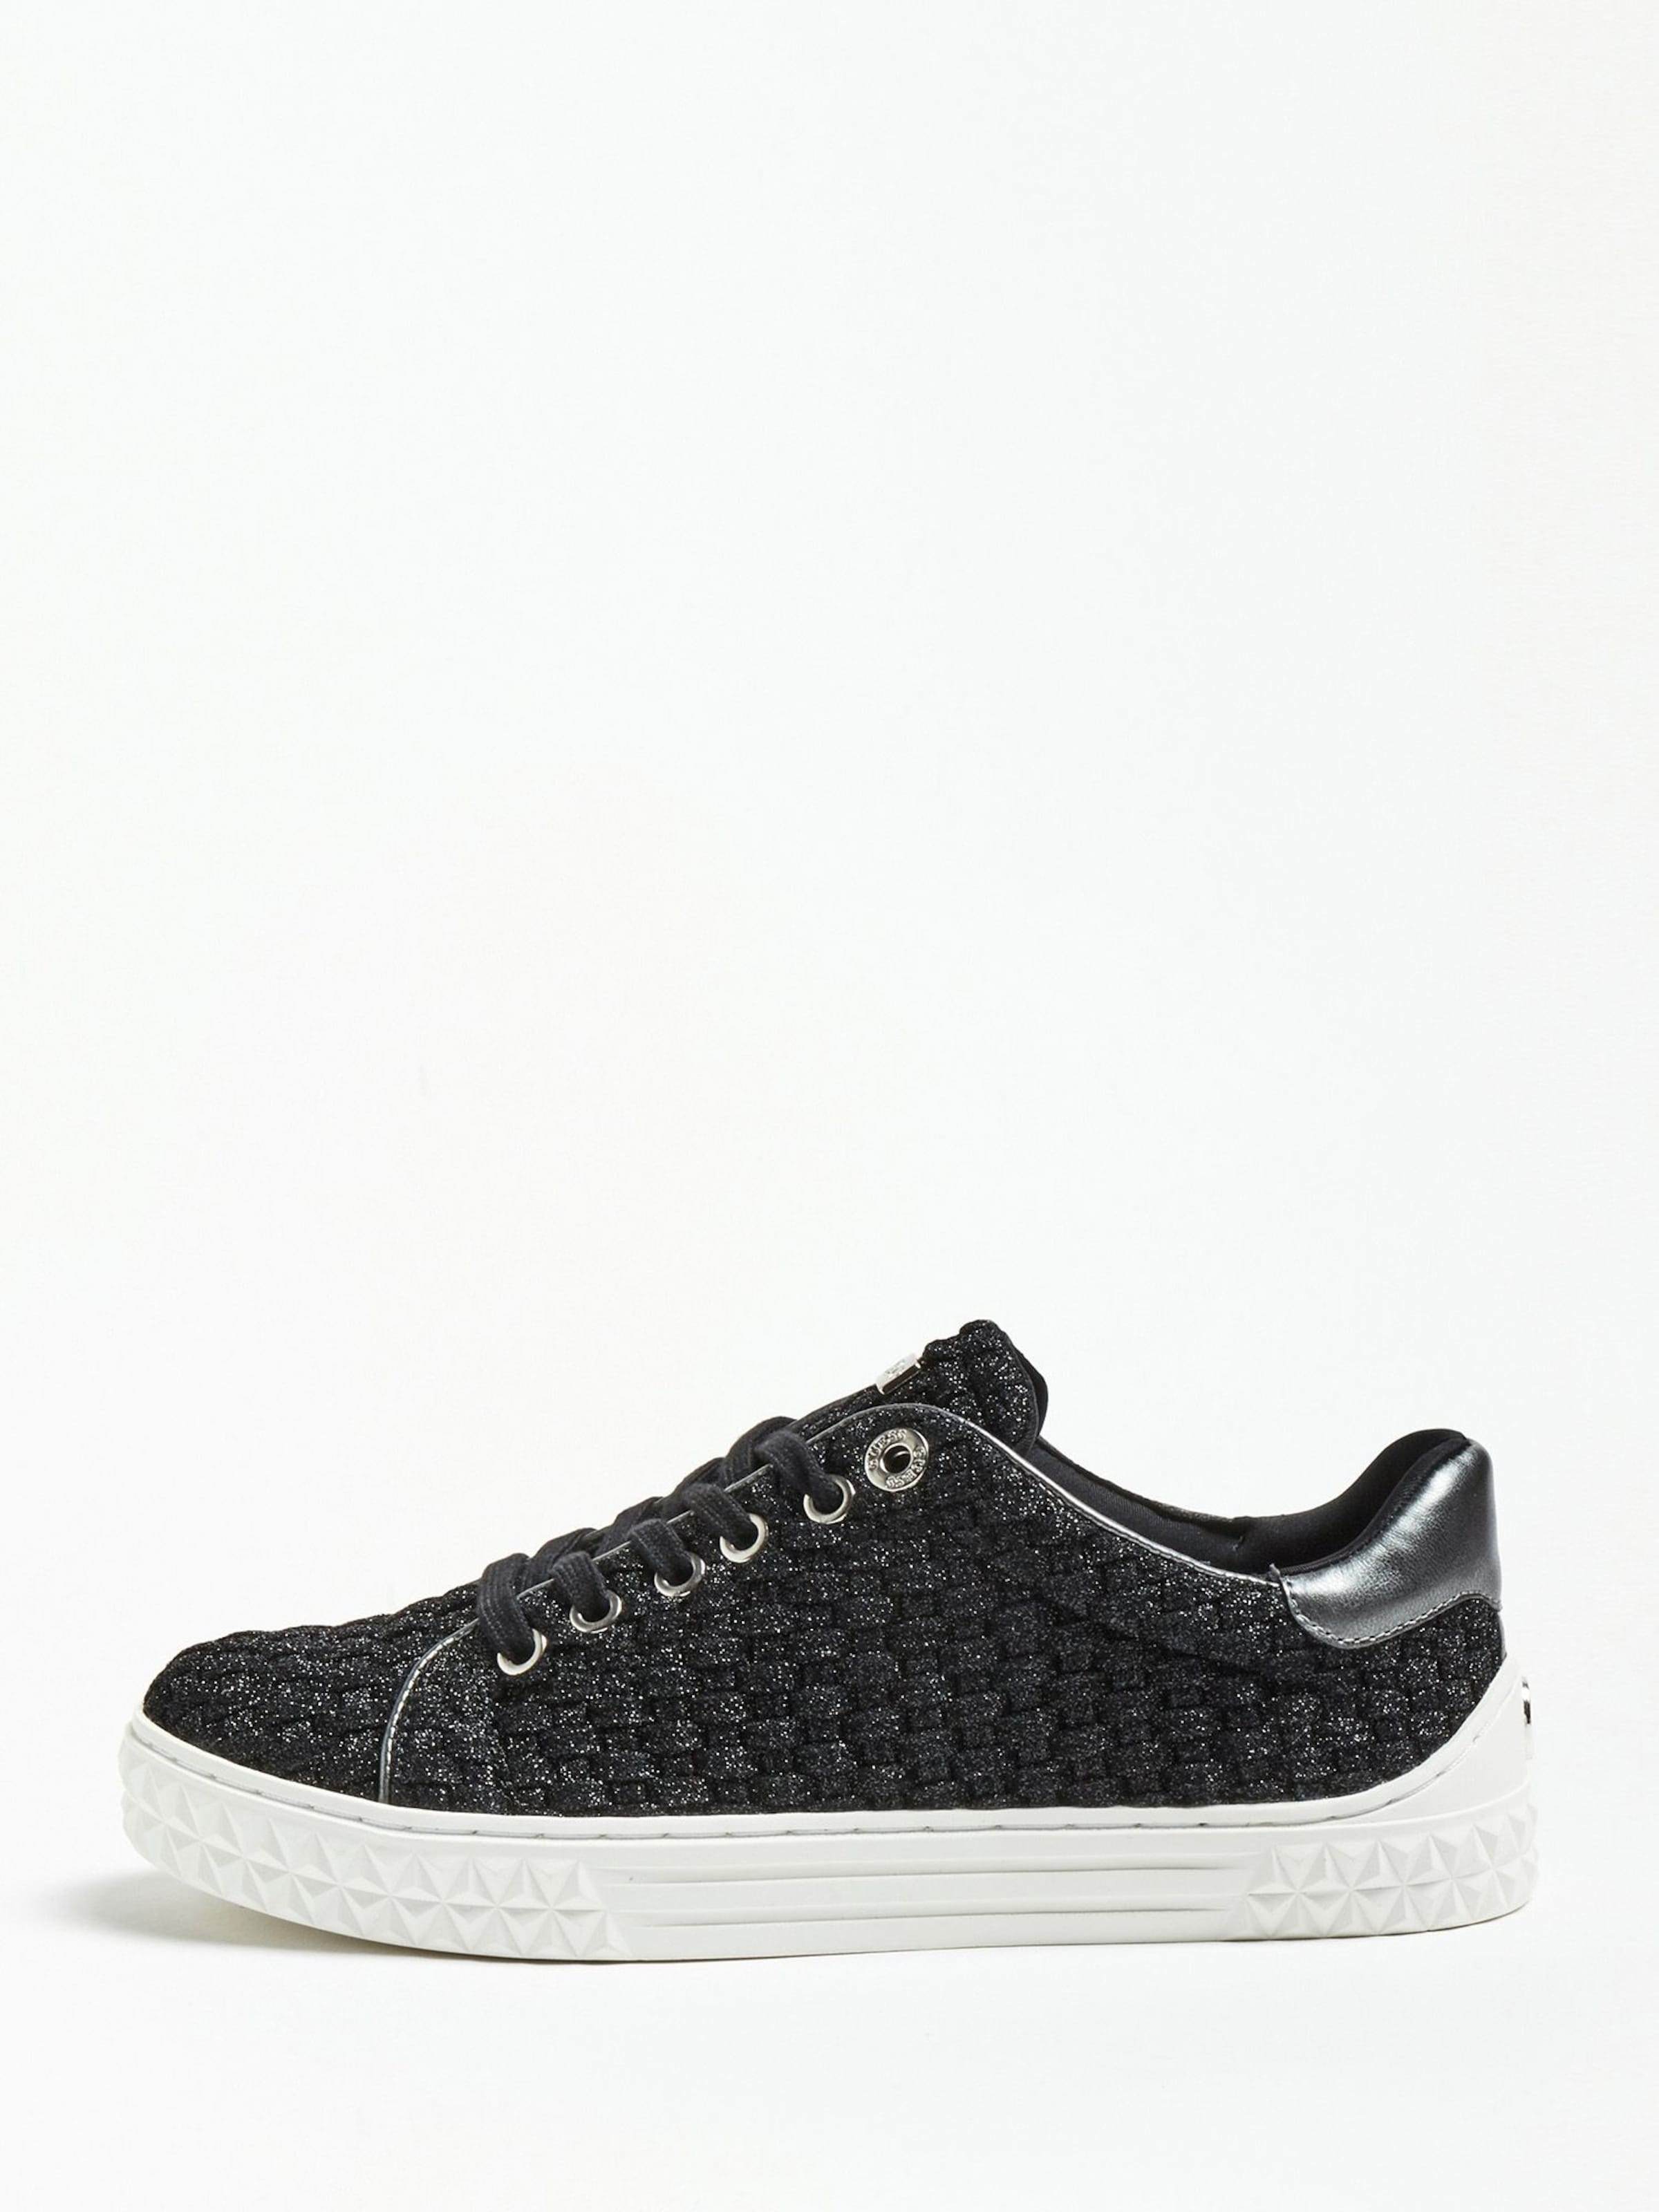 Sneaker Guess SchwarzSilber Guess 'parlayna' In SchwarzSilber Guess Sneaker In 'parlayna' Sneaker K3ulJTF1c